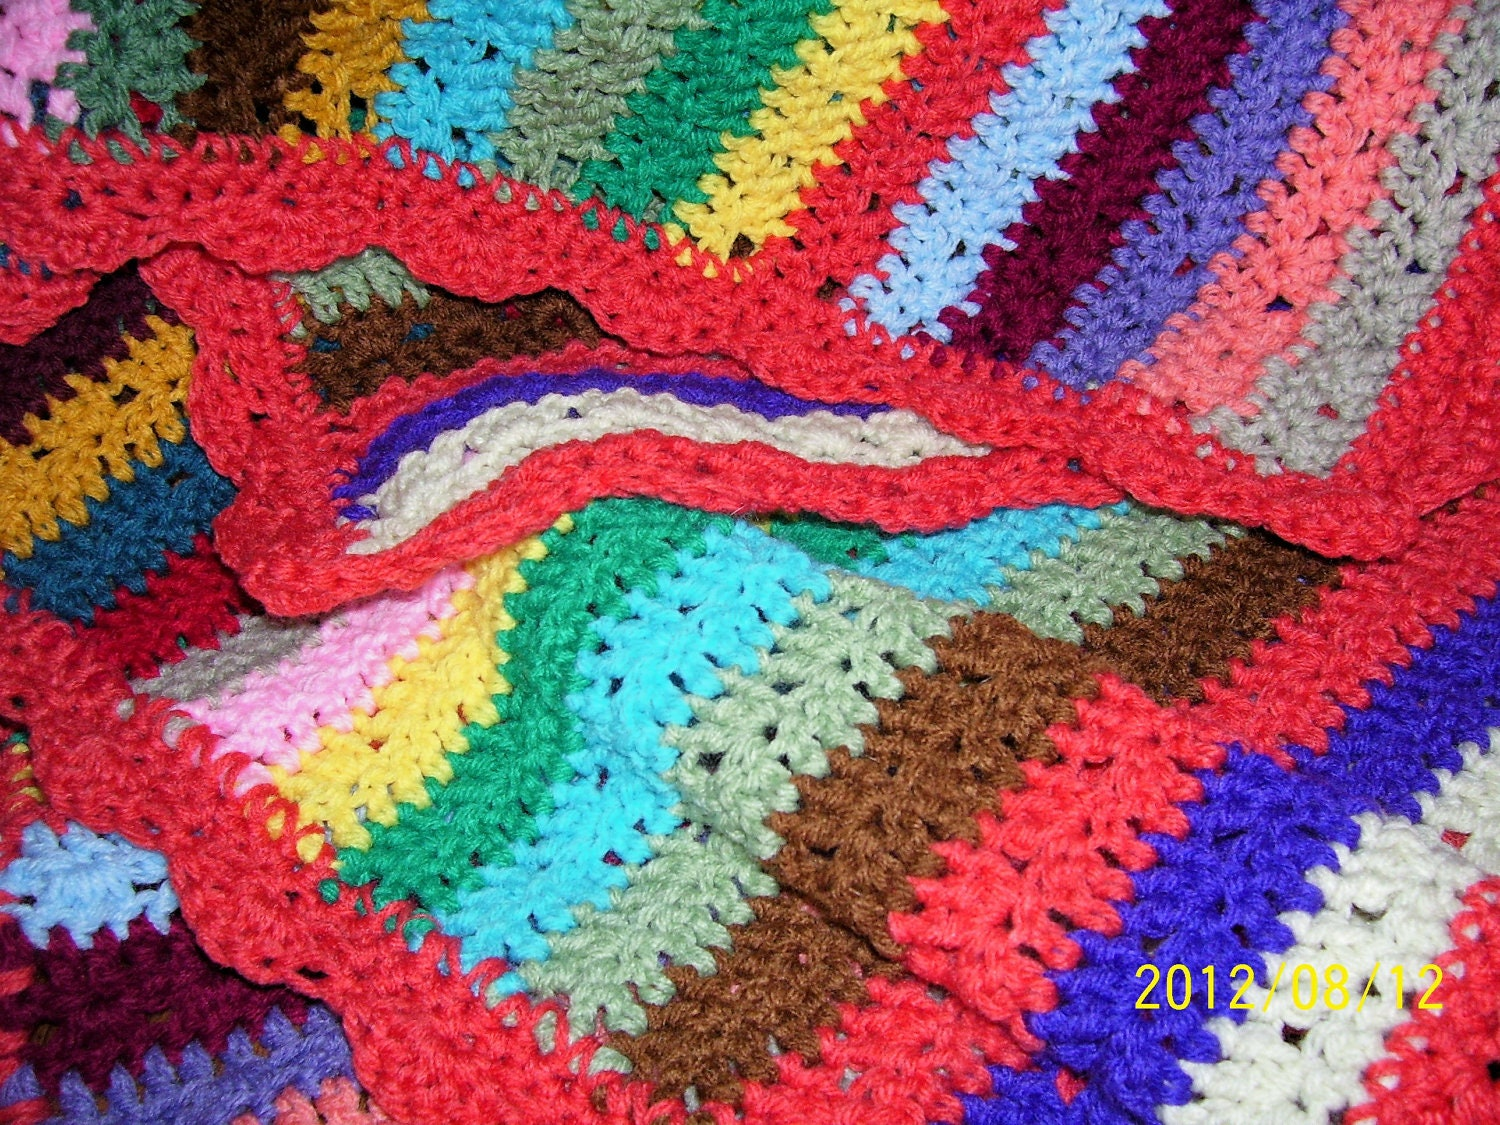 Best Knitting Stitches For Multicolor Yarn : hand crochet afghan multi-color yarn close stitch pattern